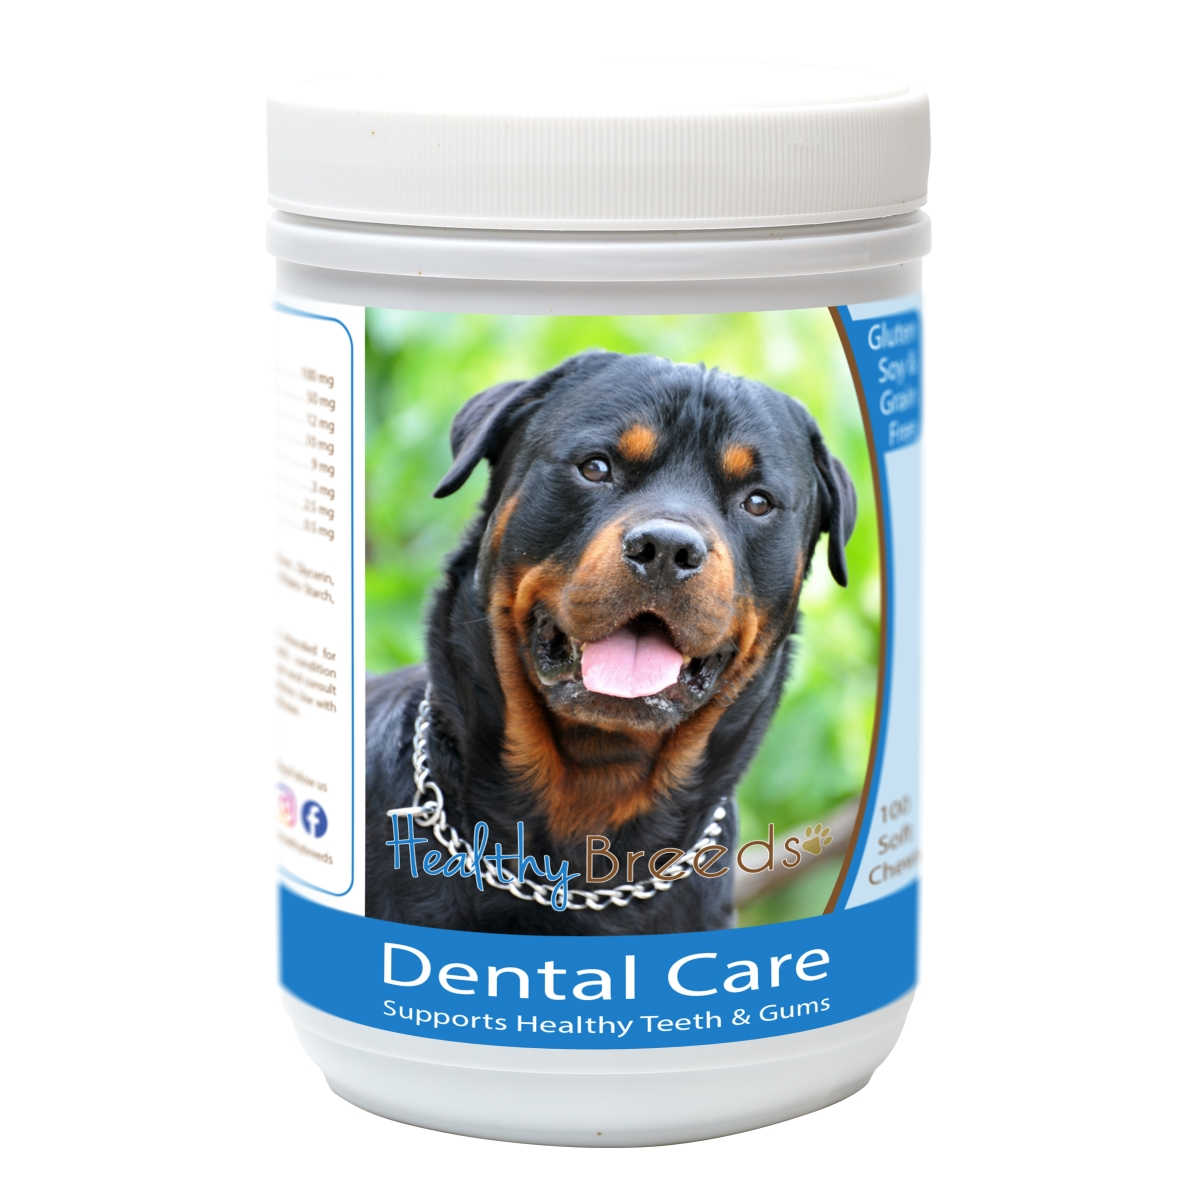 Healthy Breeds 840235162803 Rottweiler Breath Care Soft Chews for Dogs - 60 Count